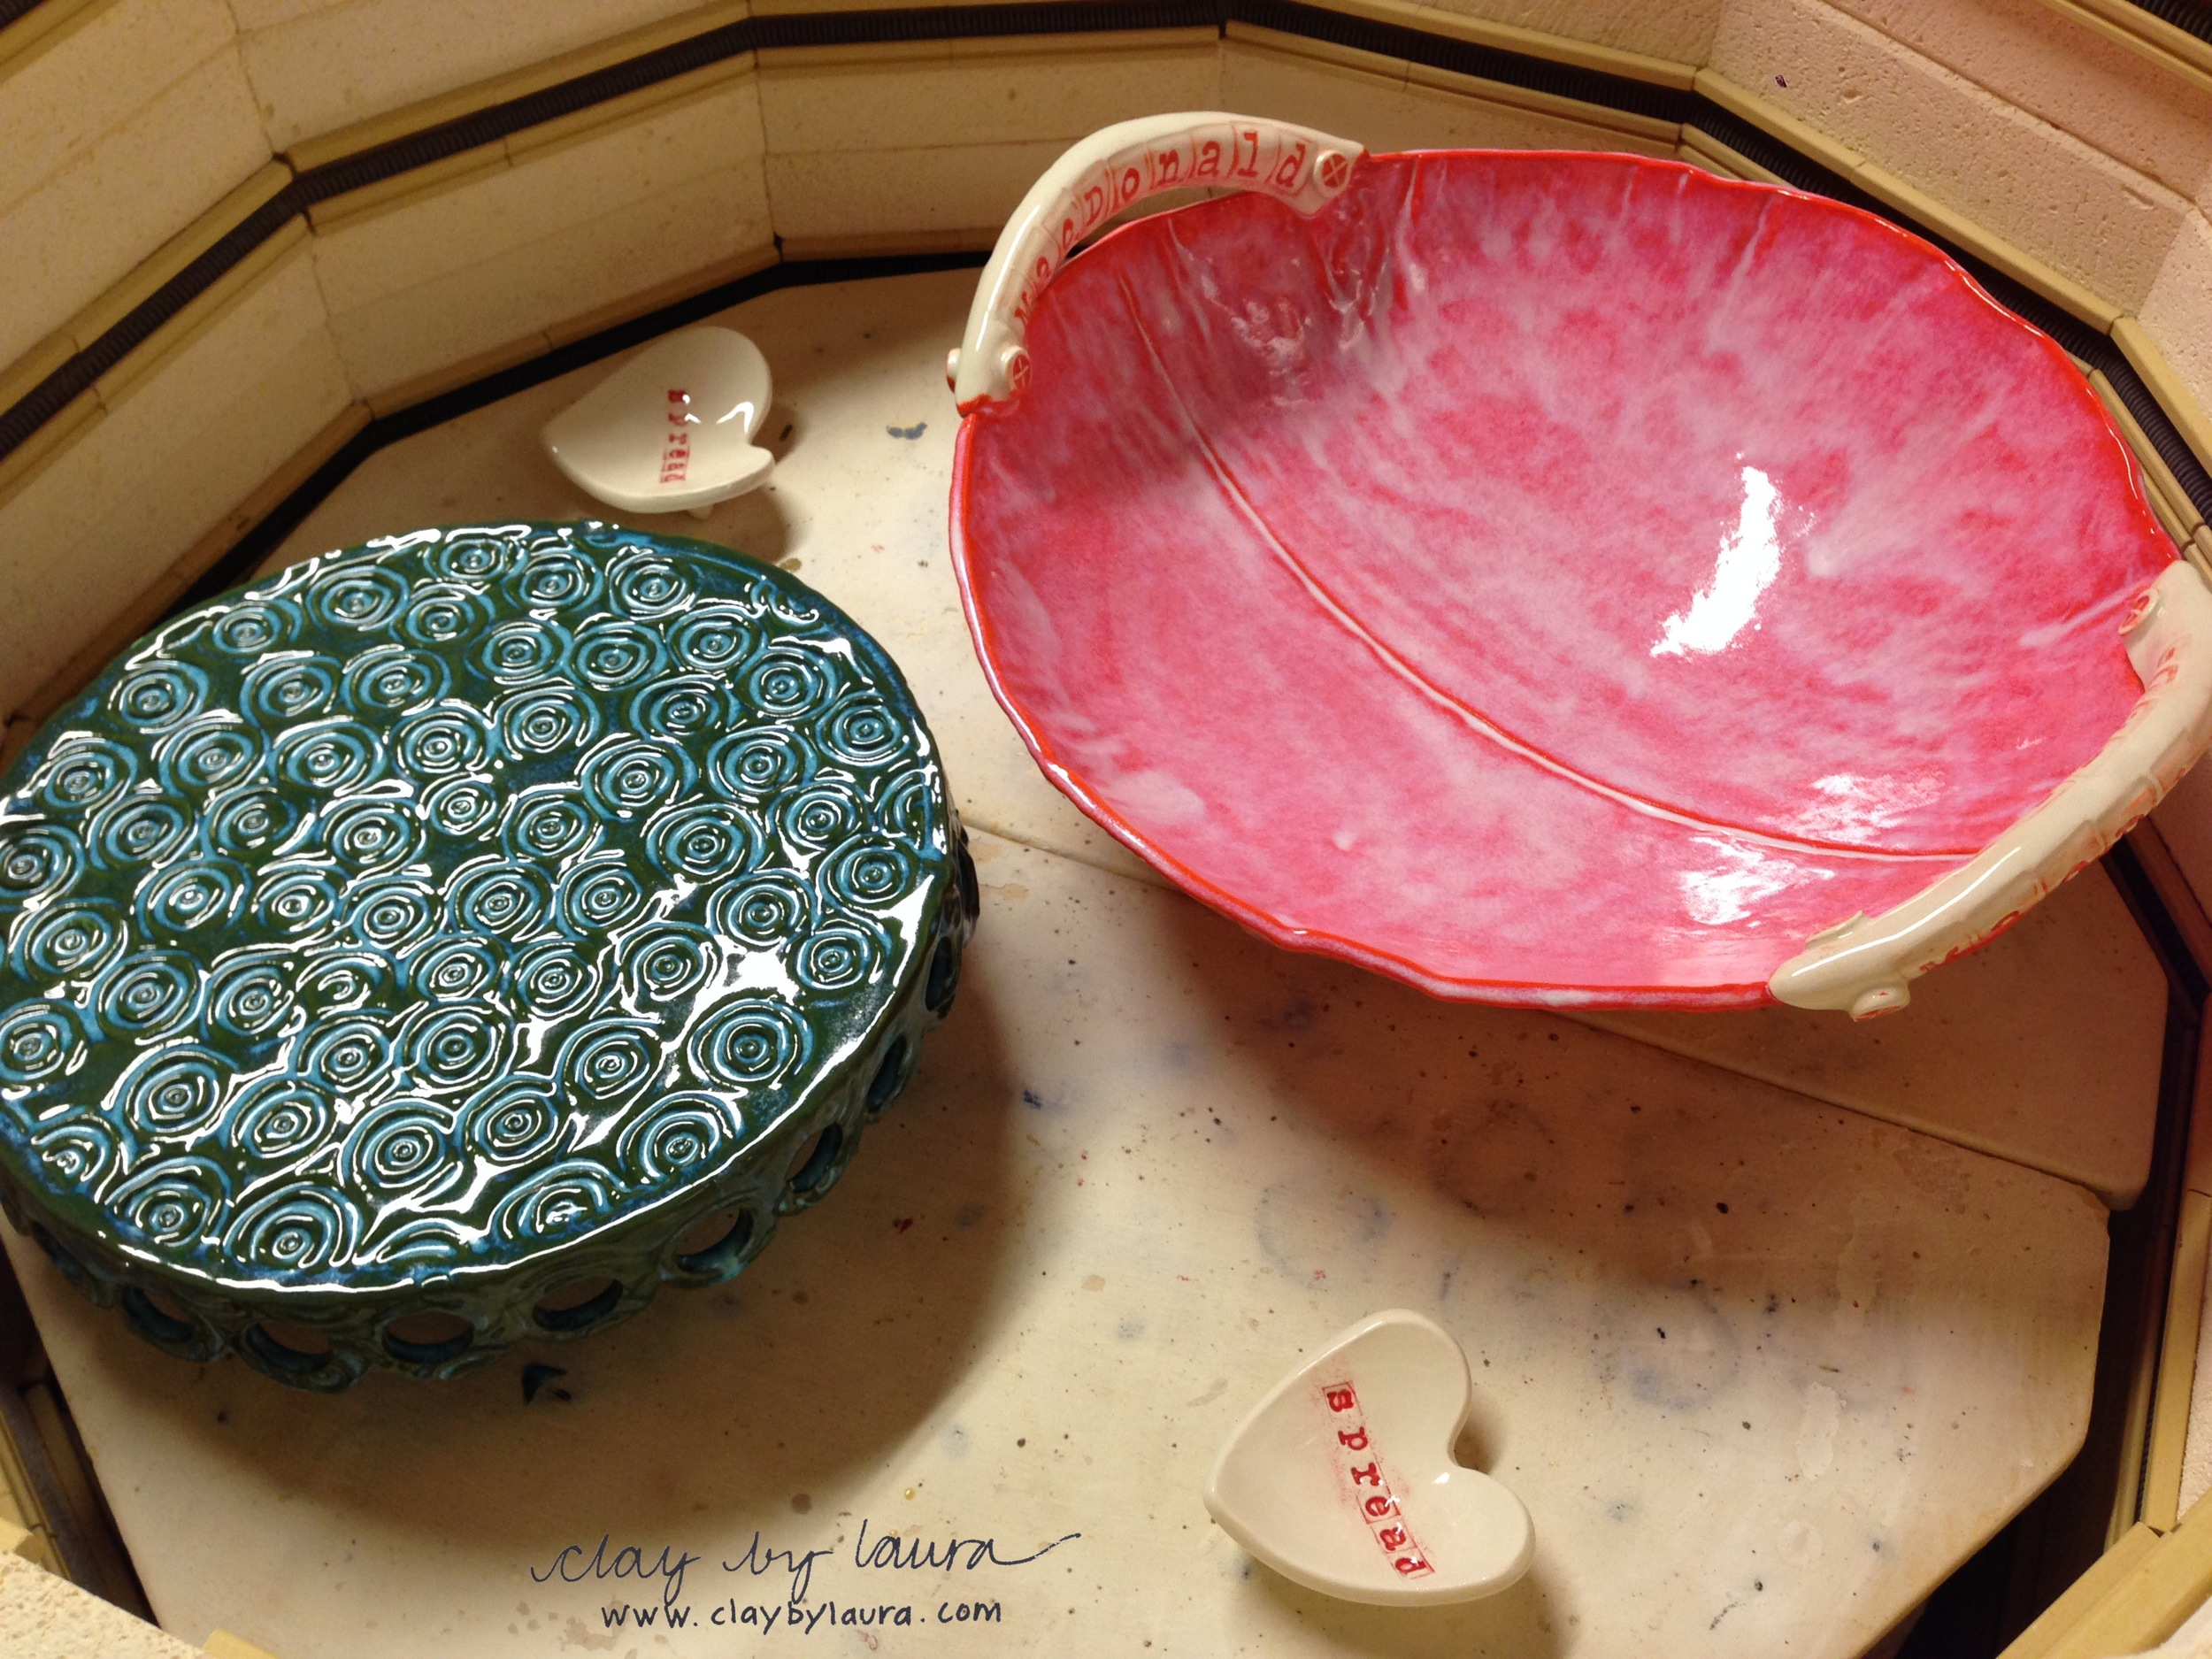 The kiln has been firing all week with new work.